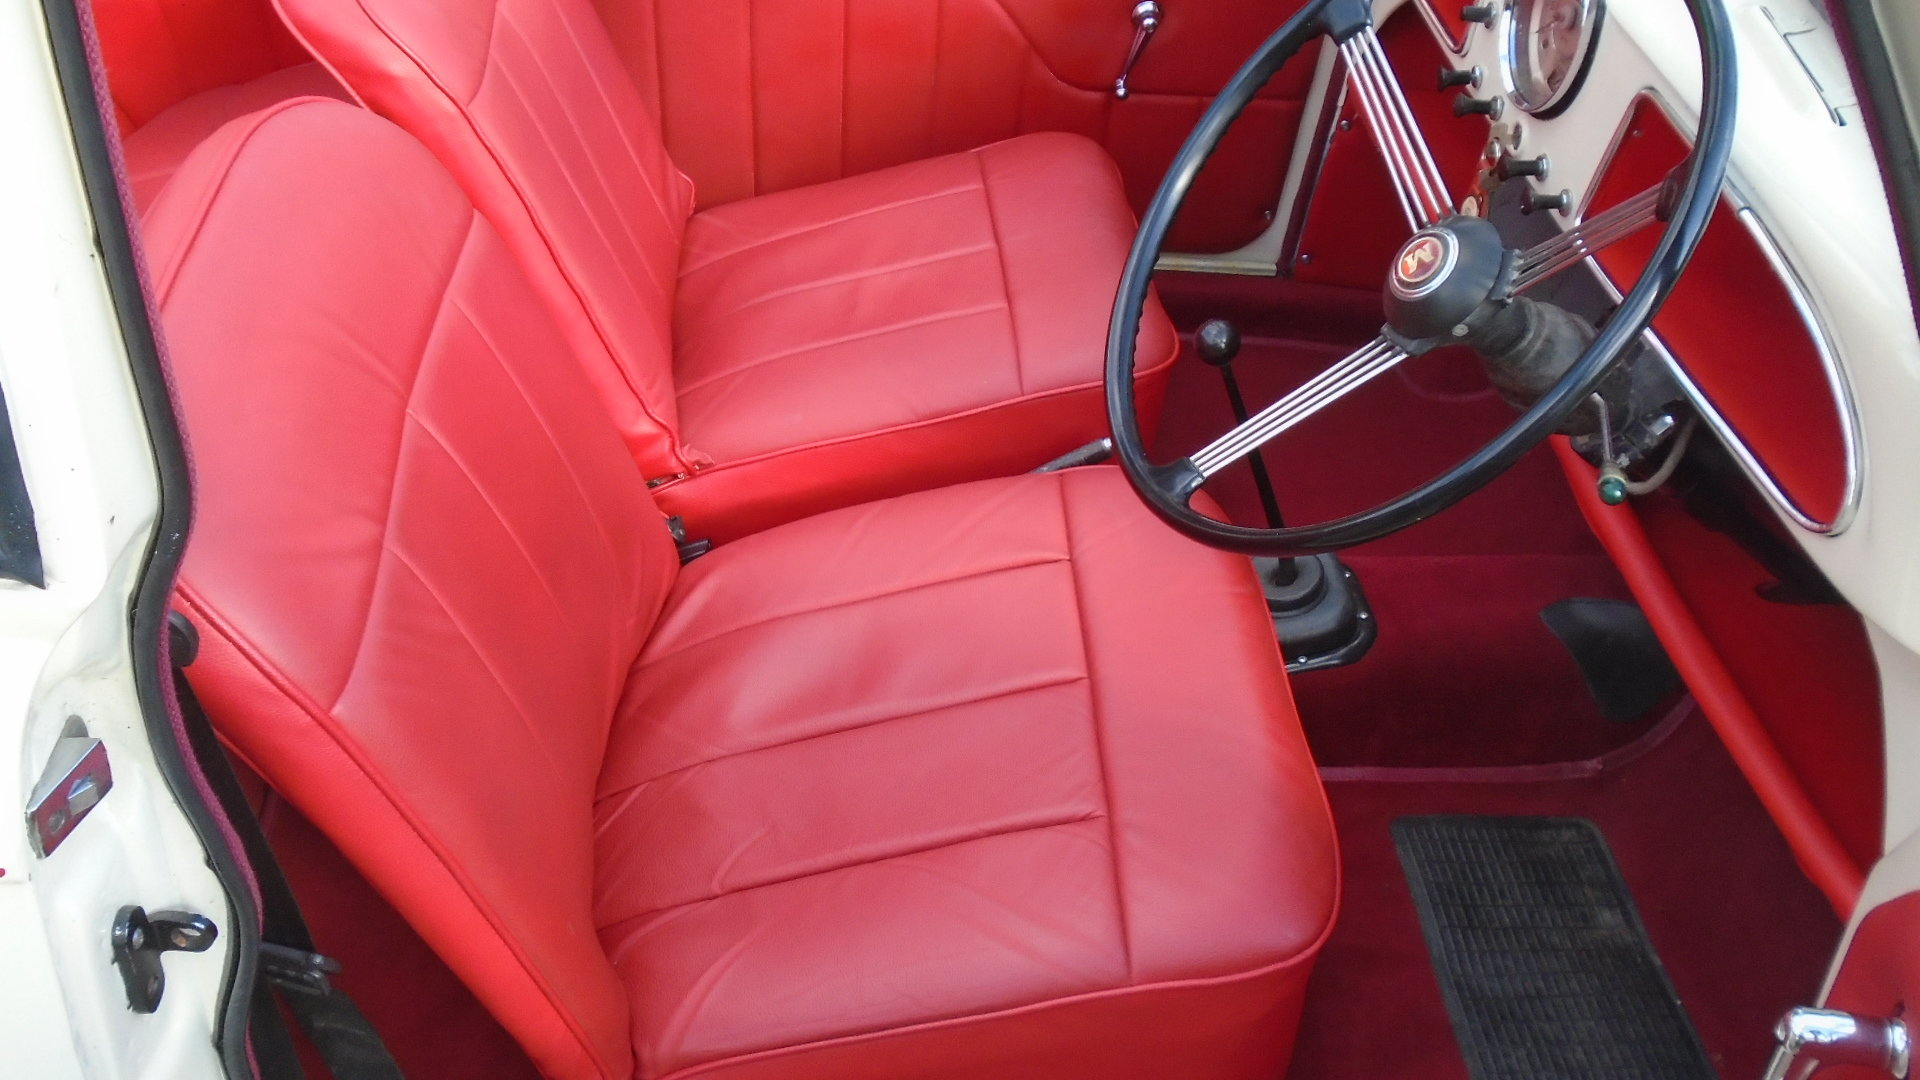 1962 Morris Minor Convertible, Genuine Tourer. For Sale (picture 7 of 10)